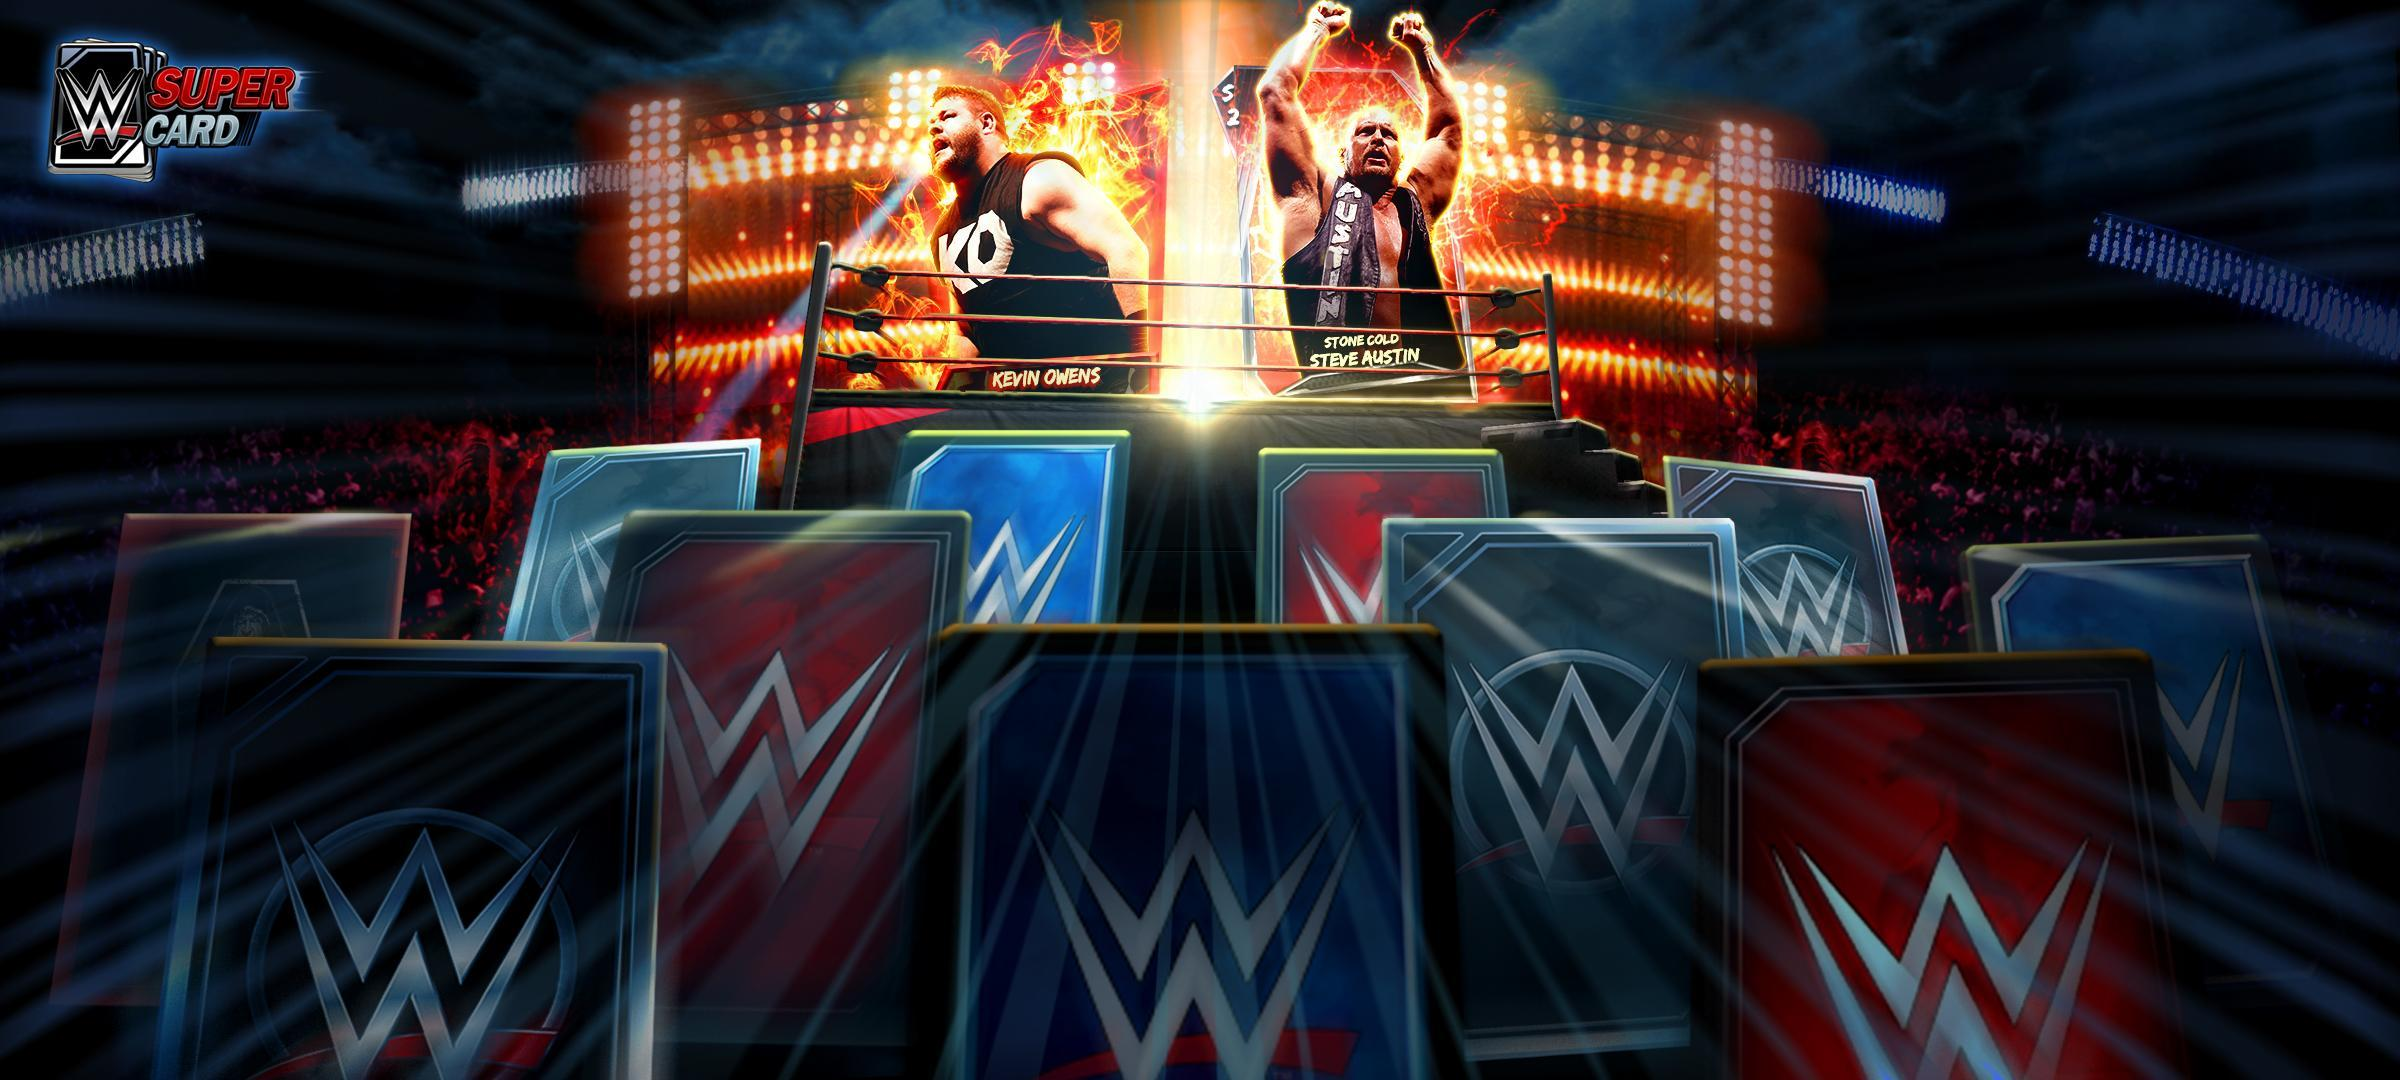 WWE SuperCard Season 3 introduces new Ranked & Wild Game Modes